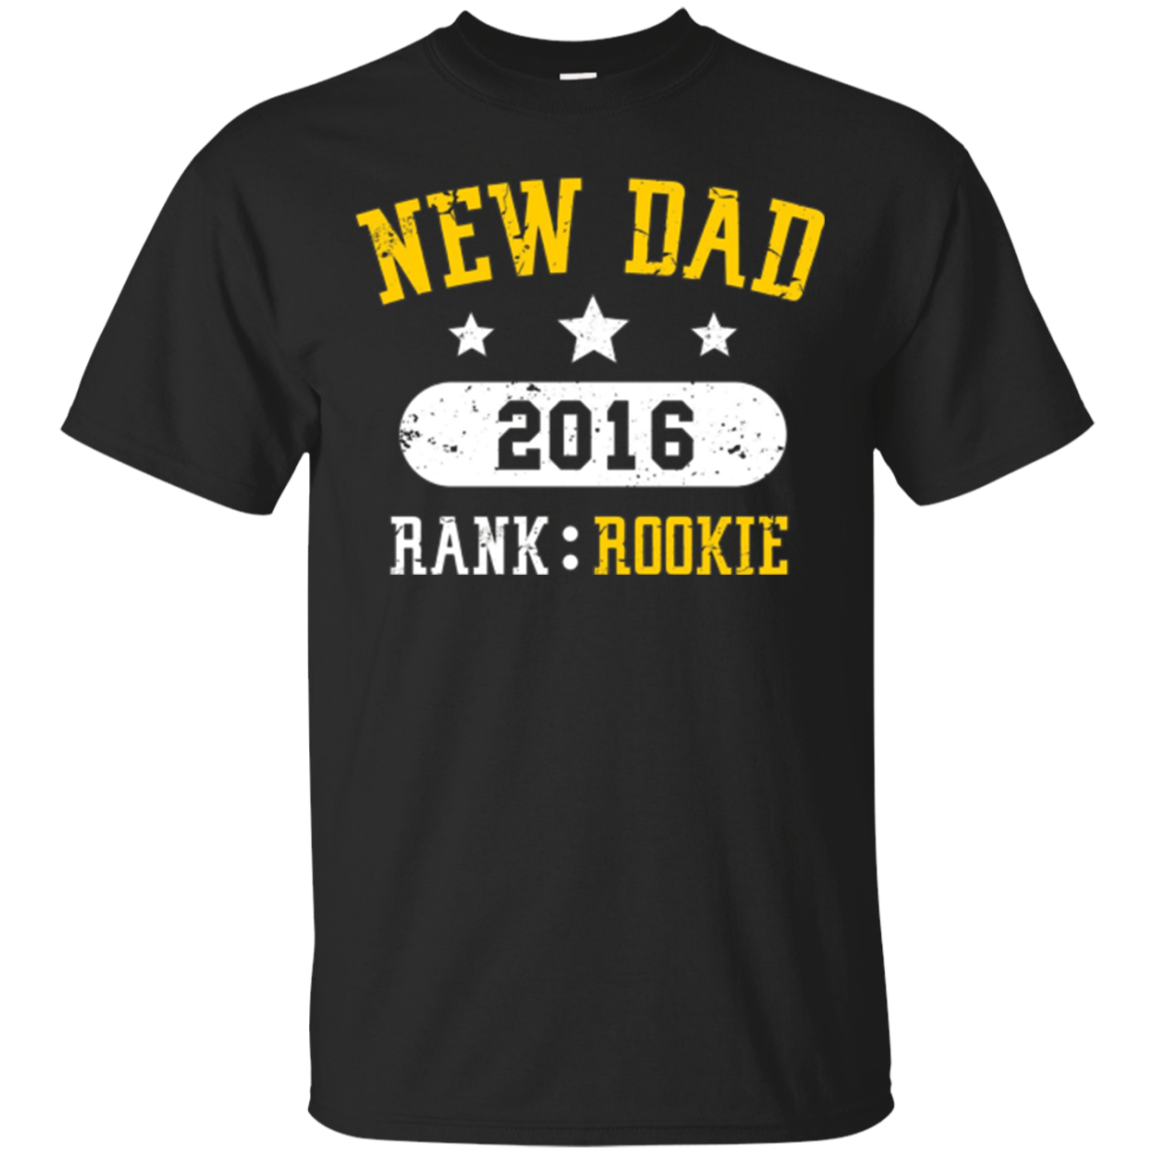 New Dad T-shirt, Funny Rookie Father 2016, By Zany Brainy